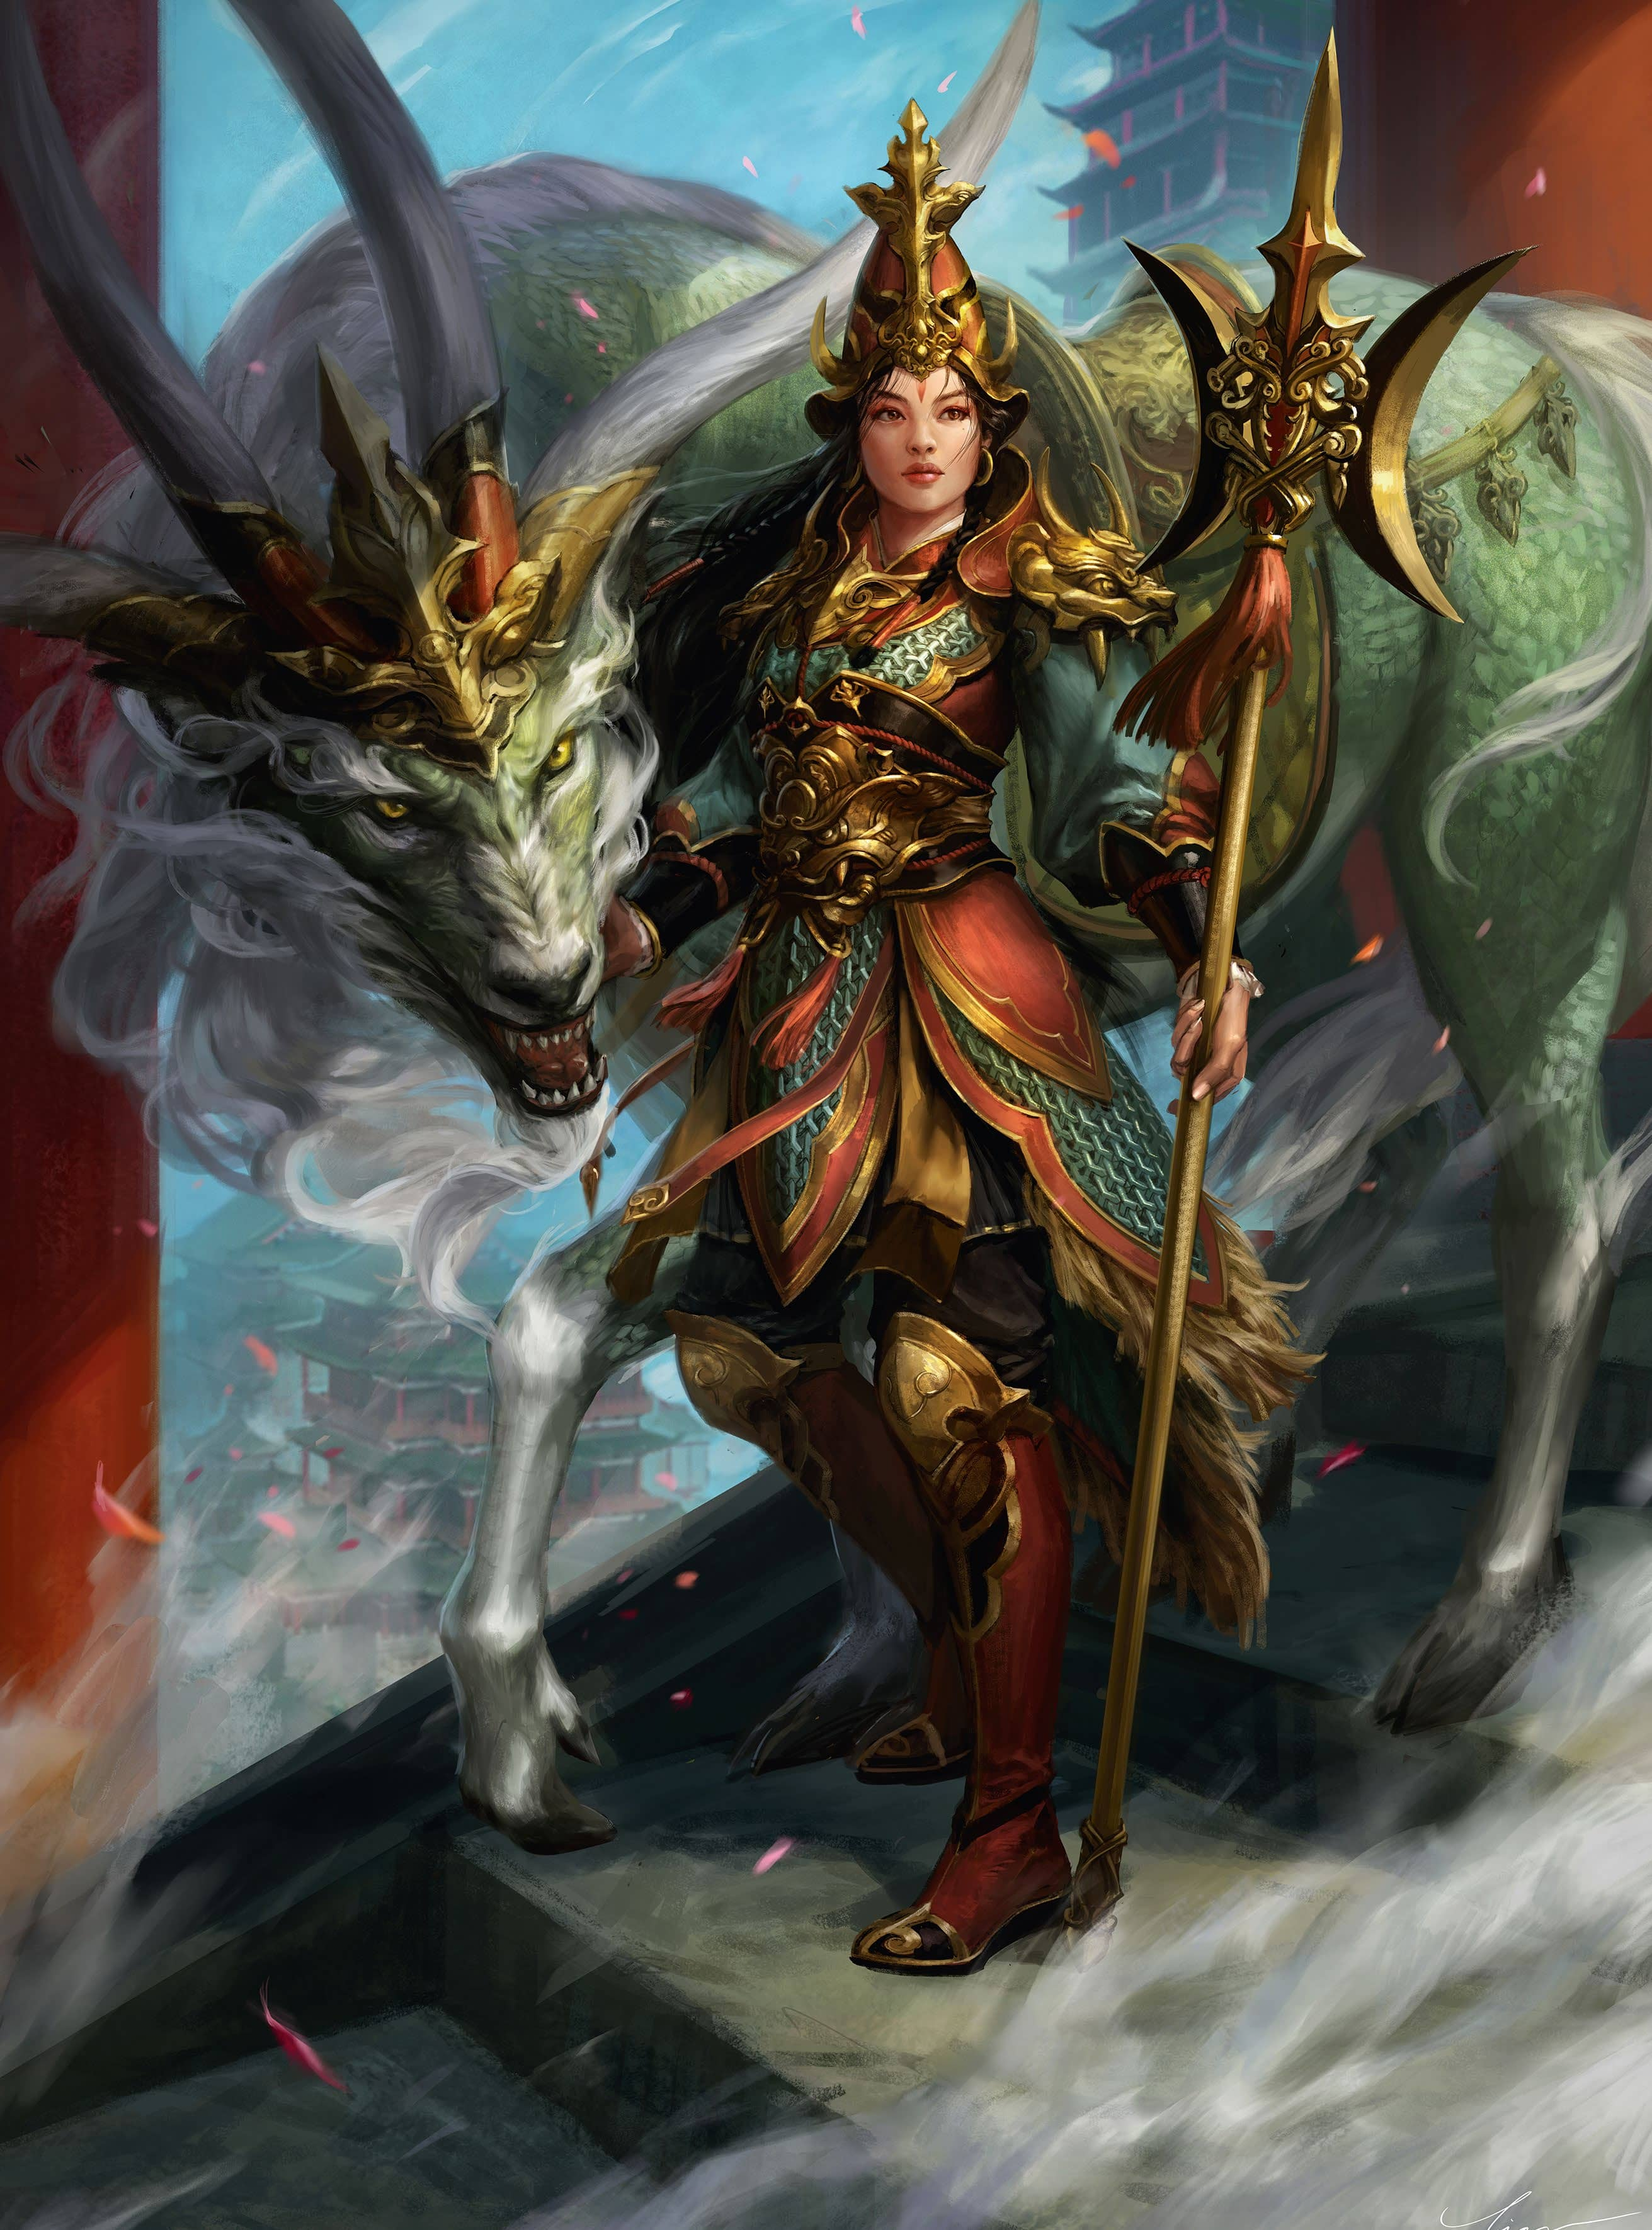 Paint-A-Chinese-Fantasy-Figure.jpg